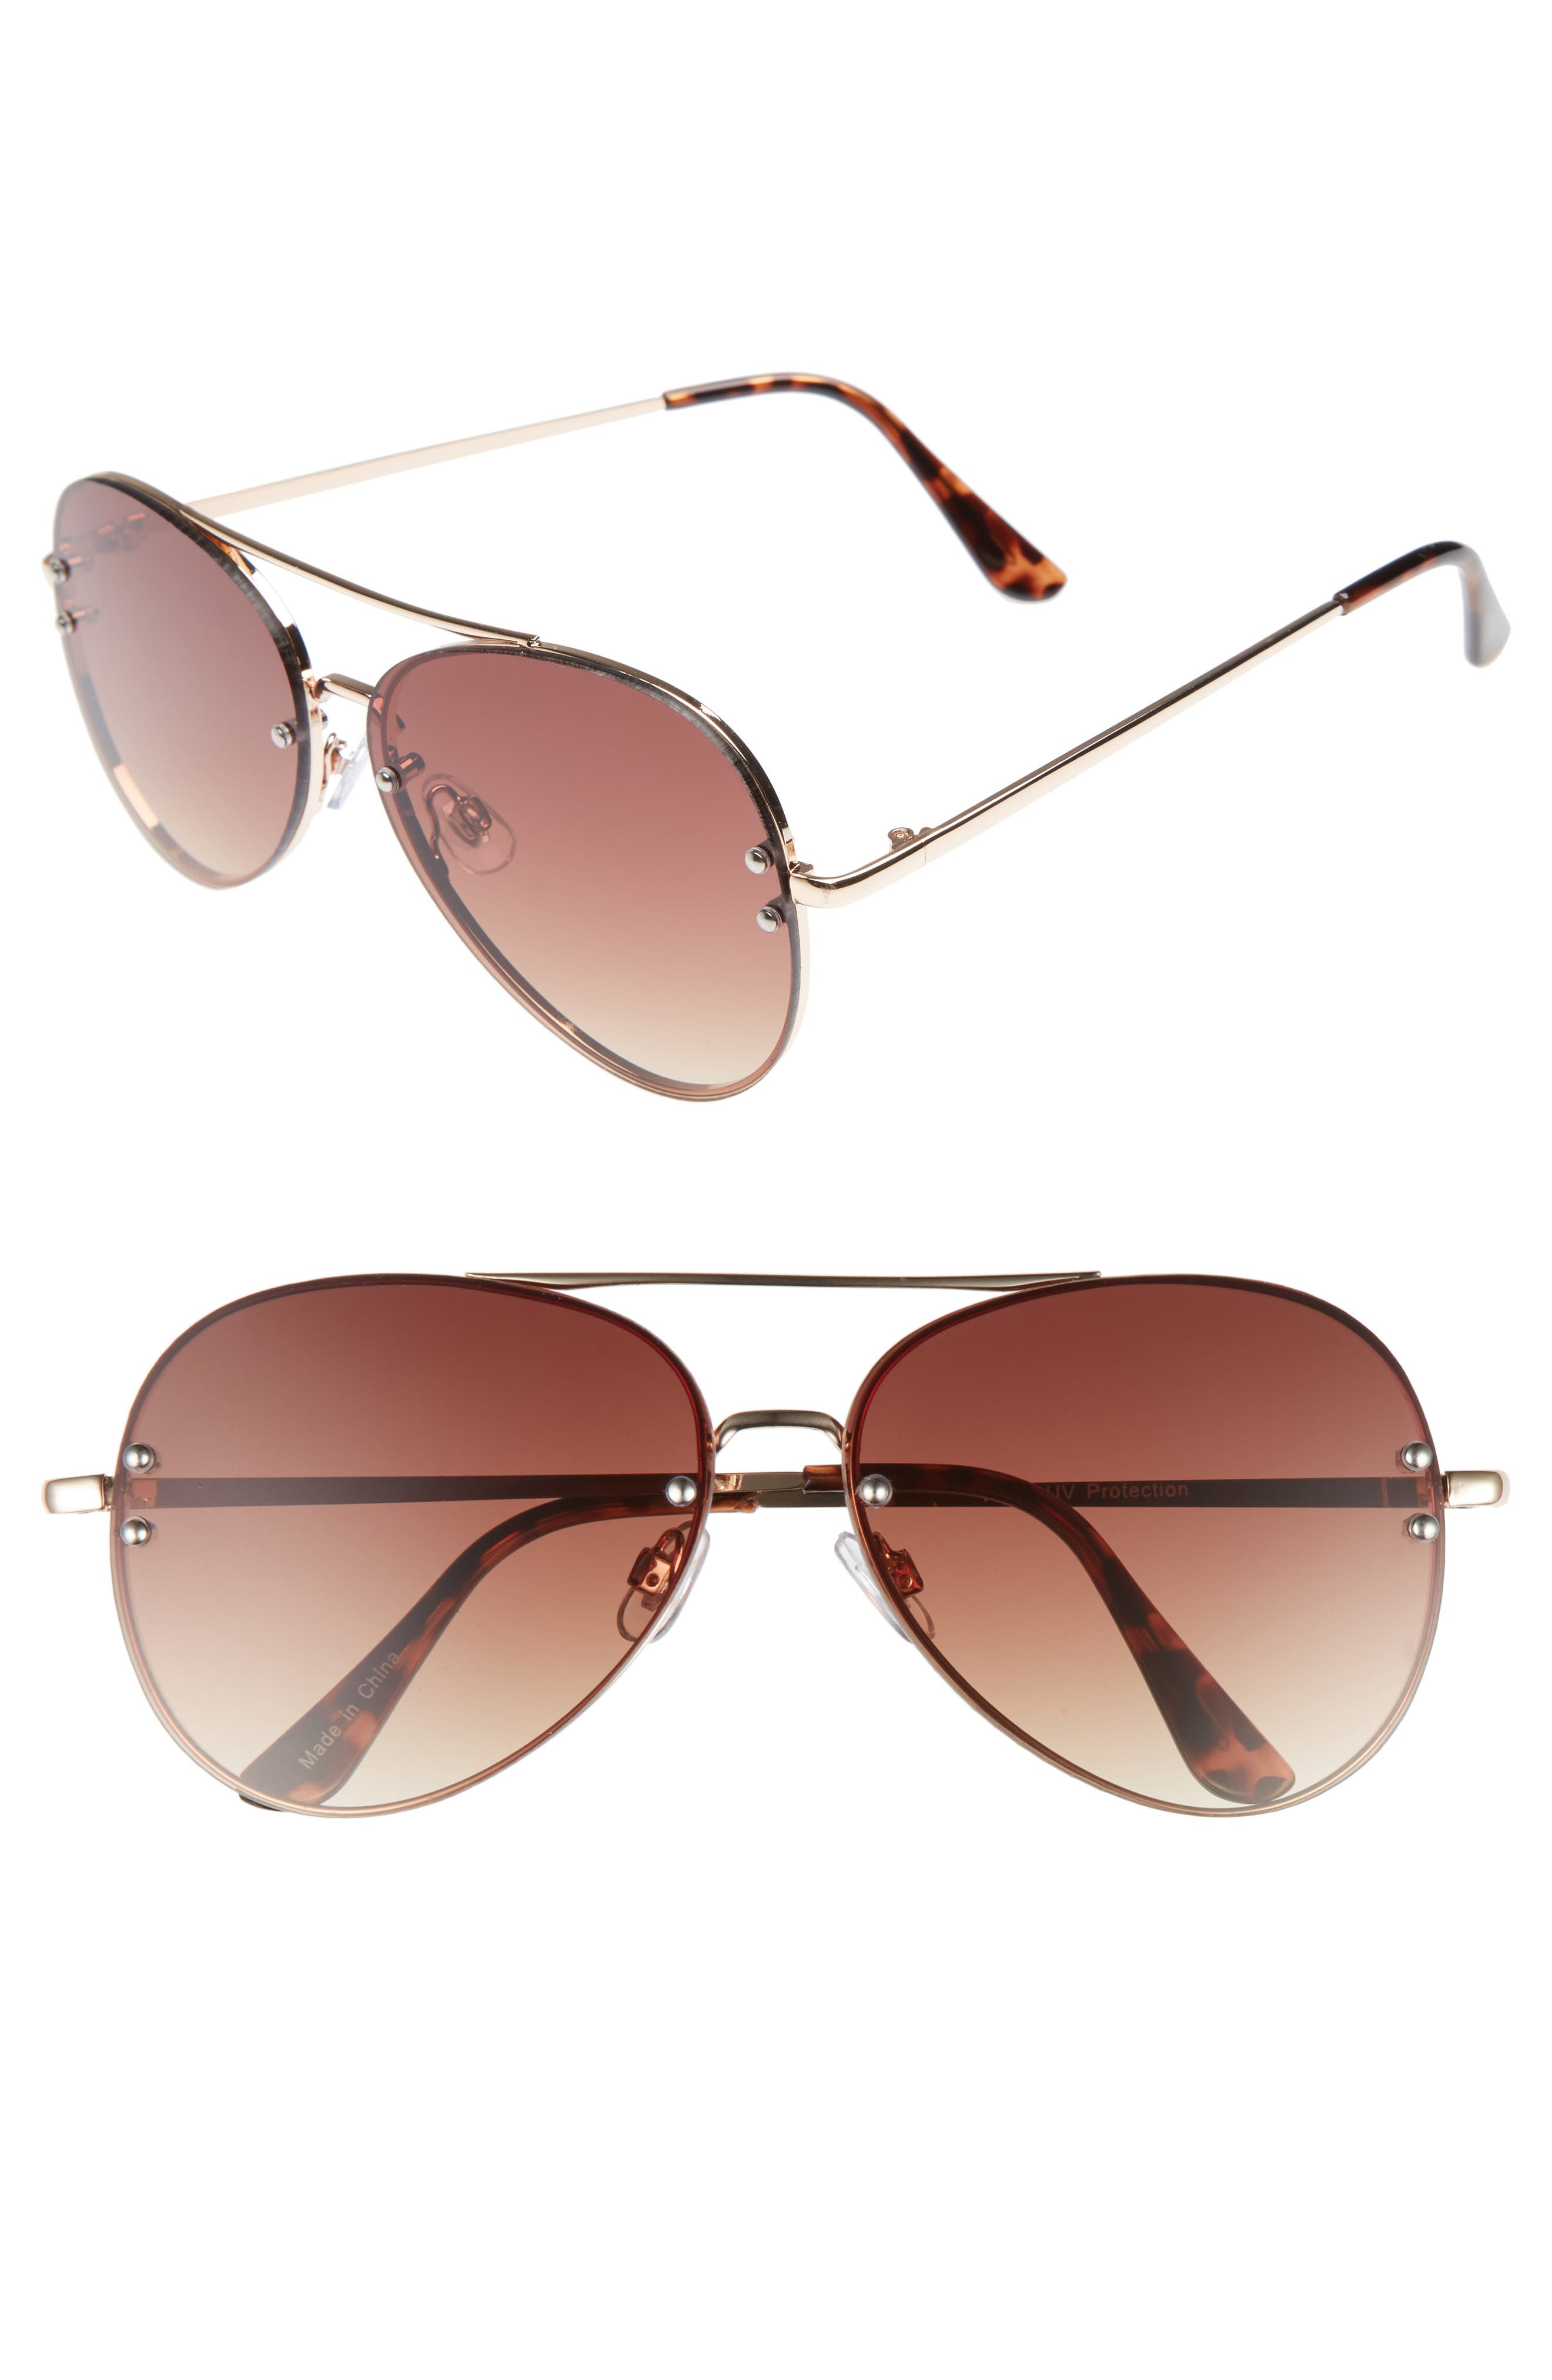 60mm Oversize Mirrored Aviator Sunglasses,                             Main thumbnail 1, color,                             GOLD/ BROWN